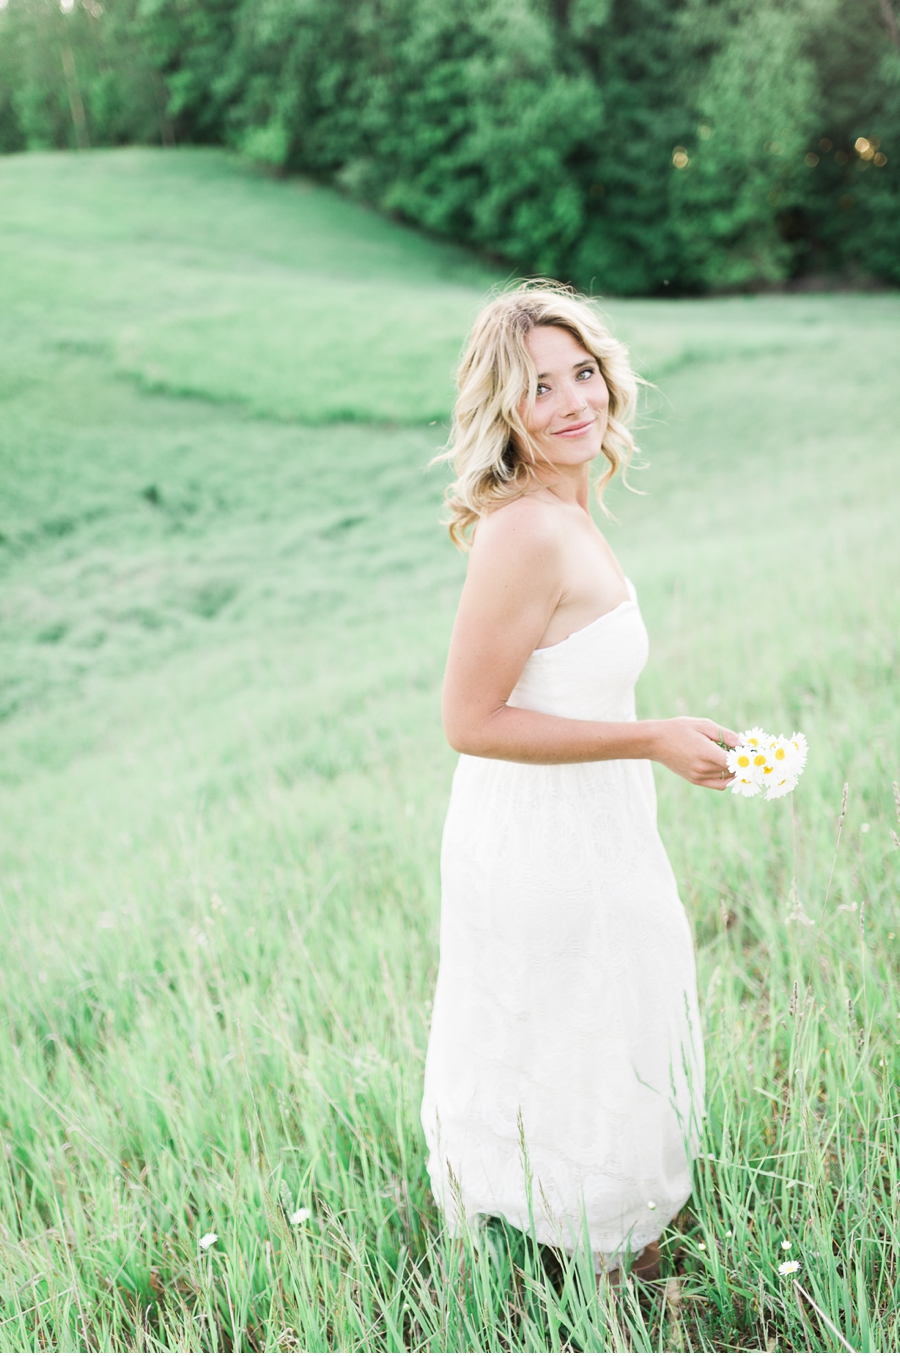 Bride-to-be-engagement-session